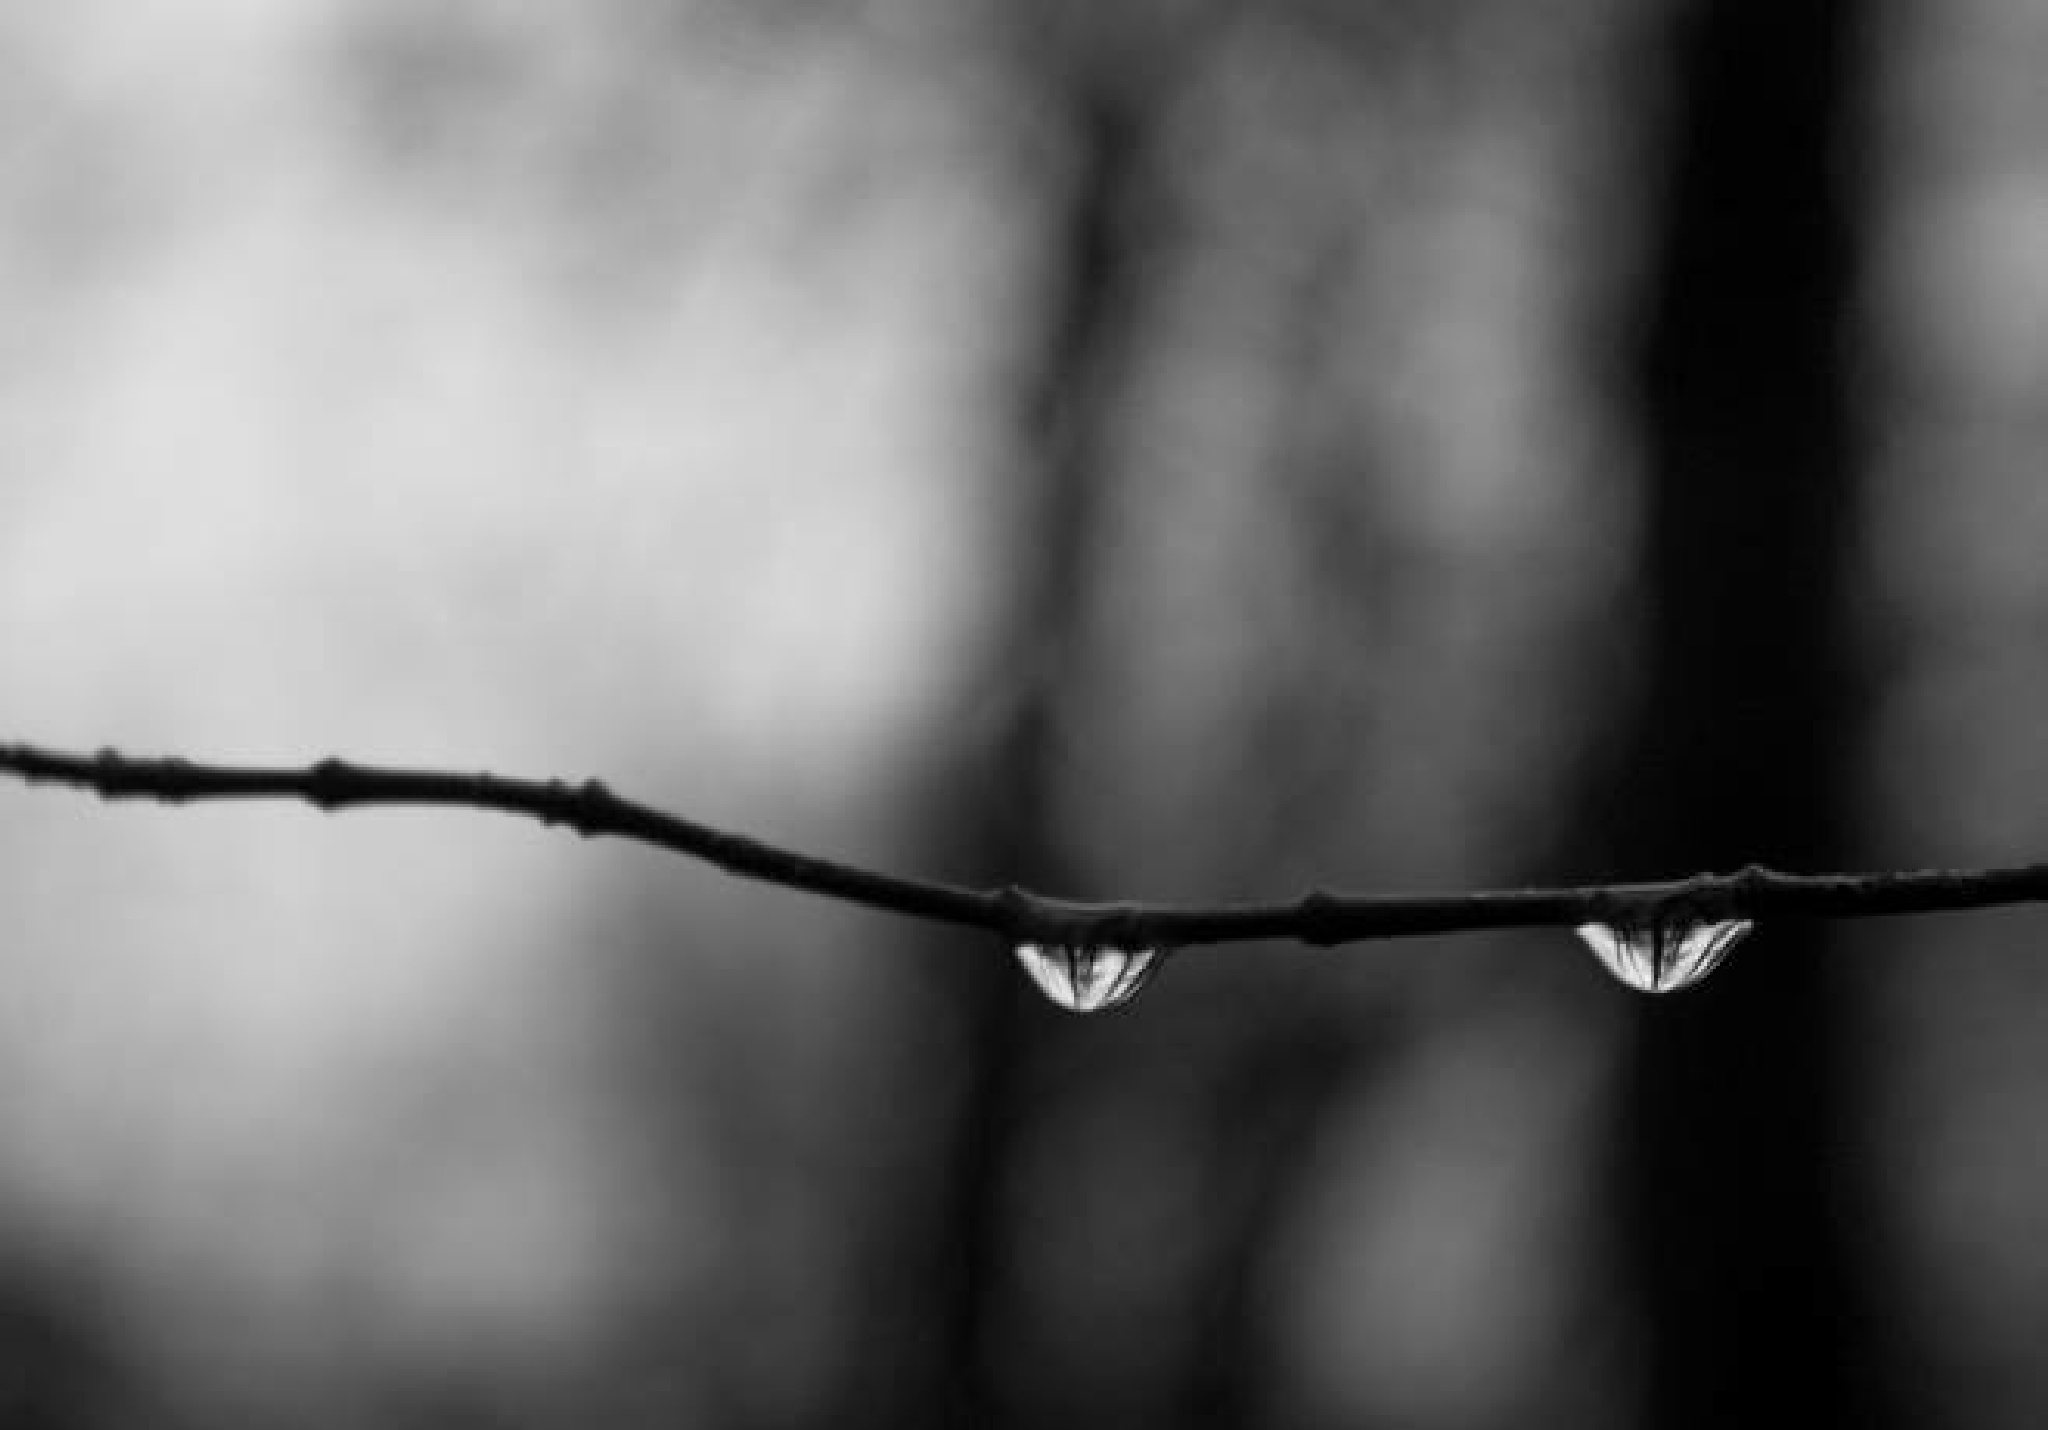 Two tears by m.cozzutti